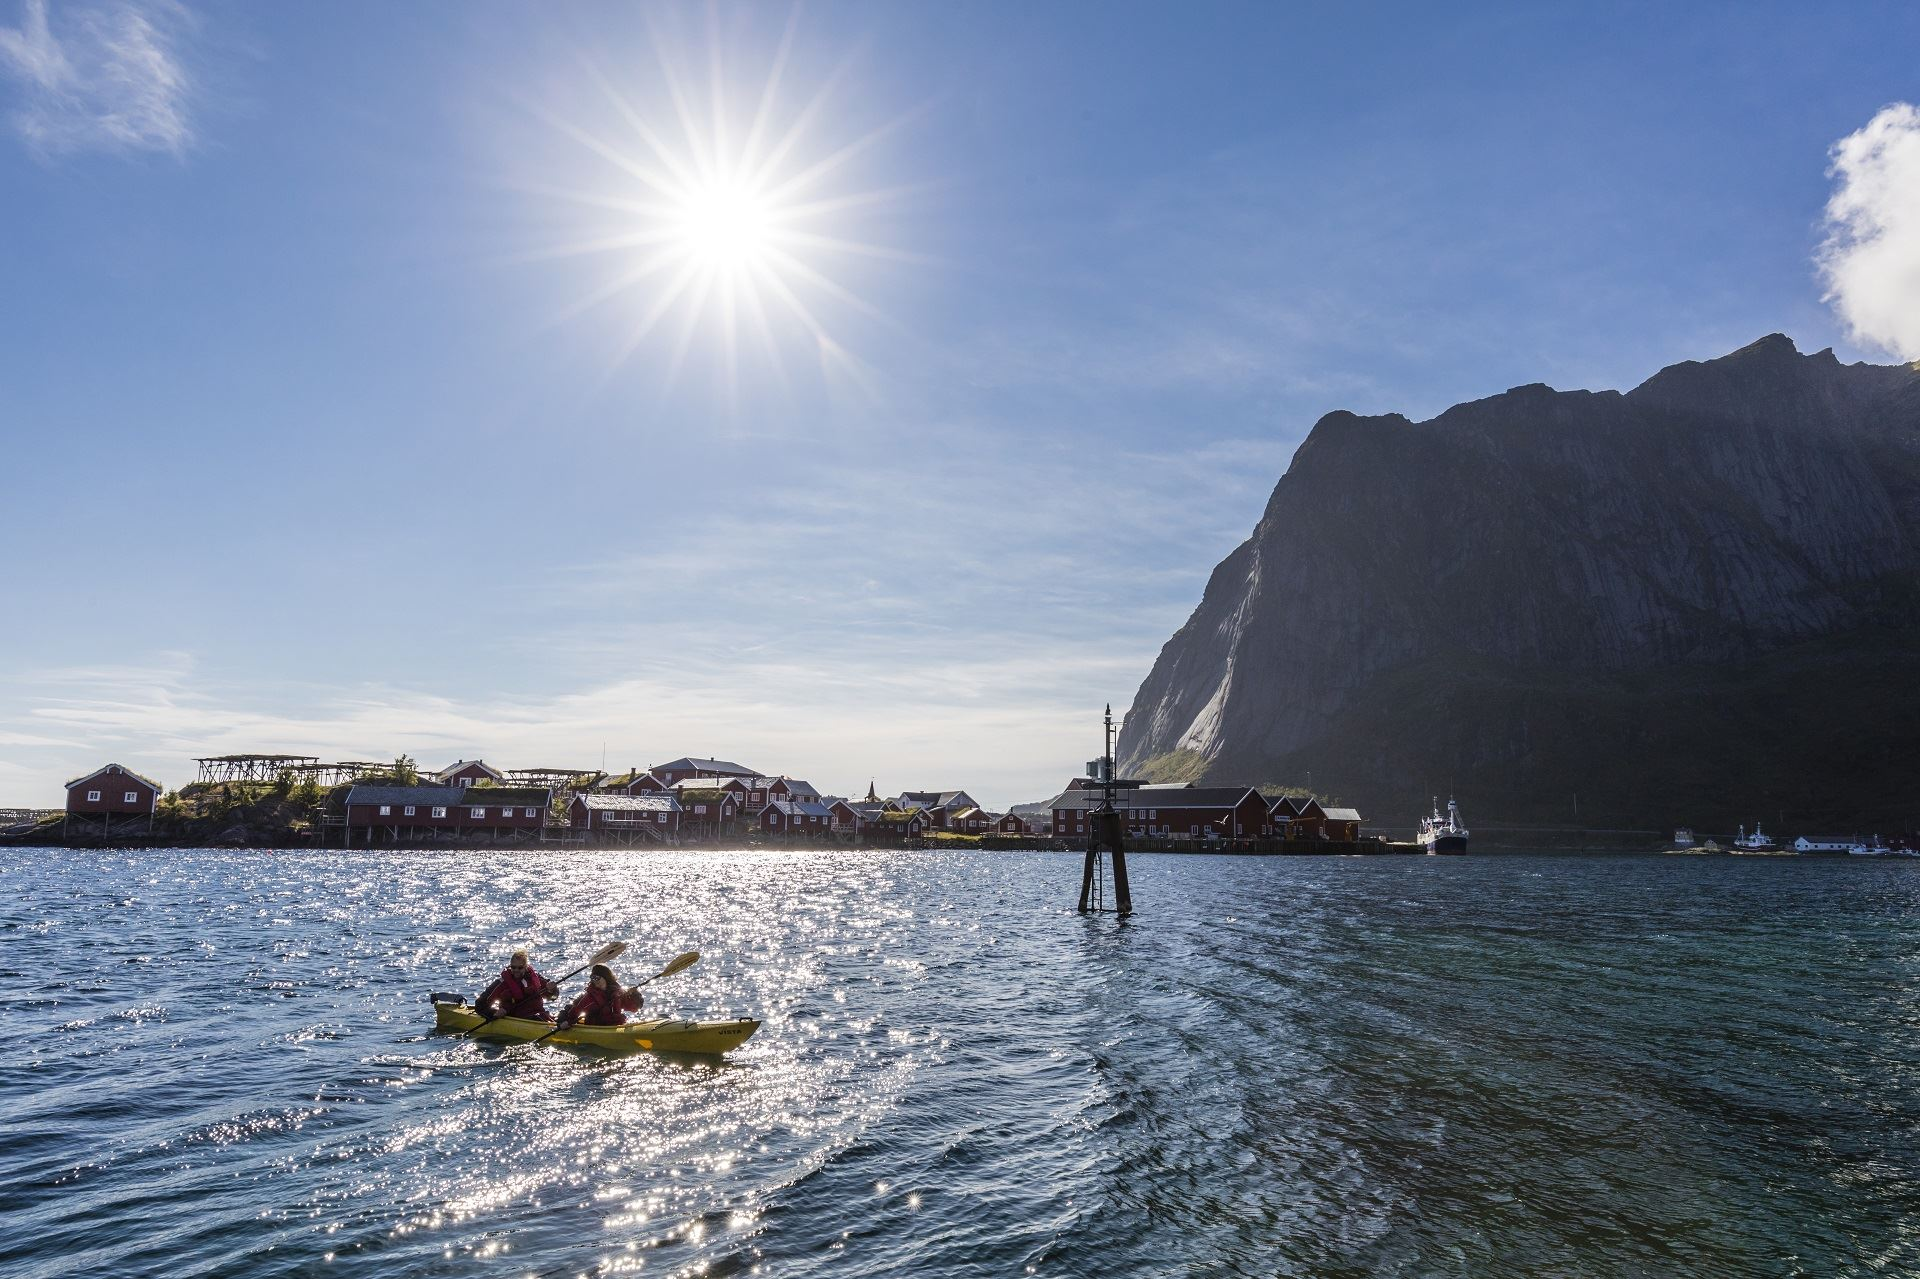 Evening tour with kayak from Reine